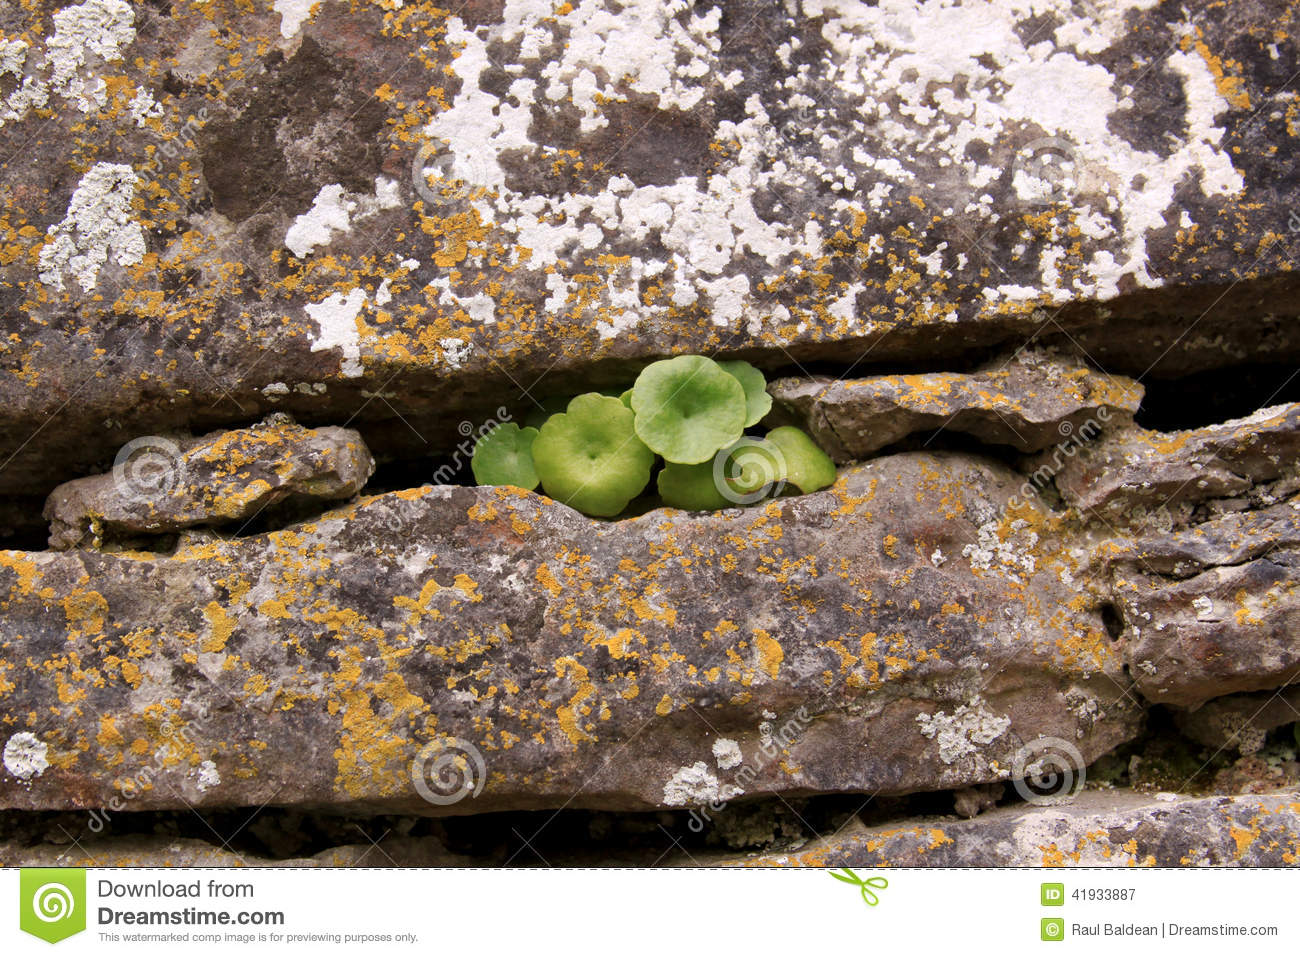 Plant and rock